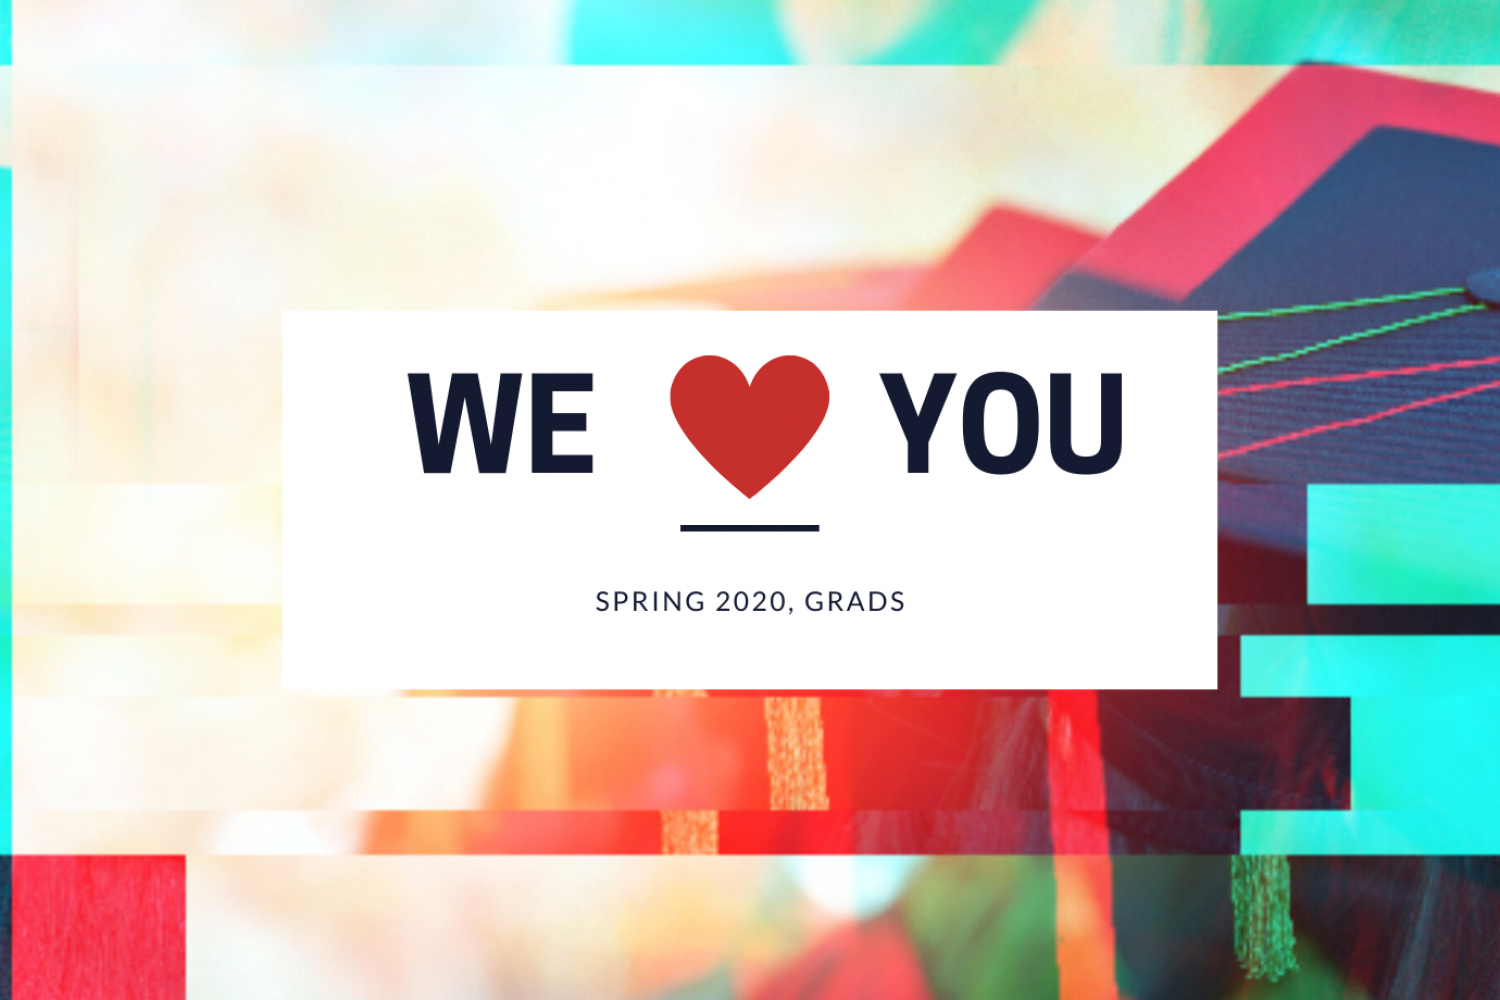 We love our Spring 2020 grads graphic with silhouettte of a graduation cap